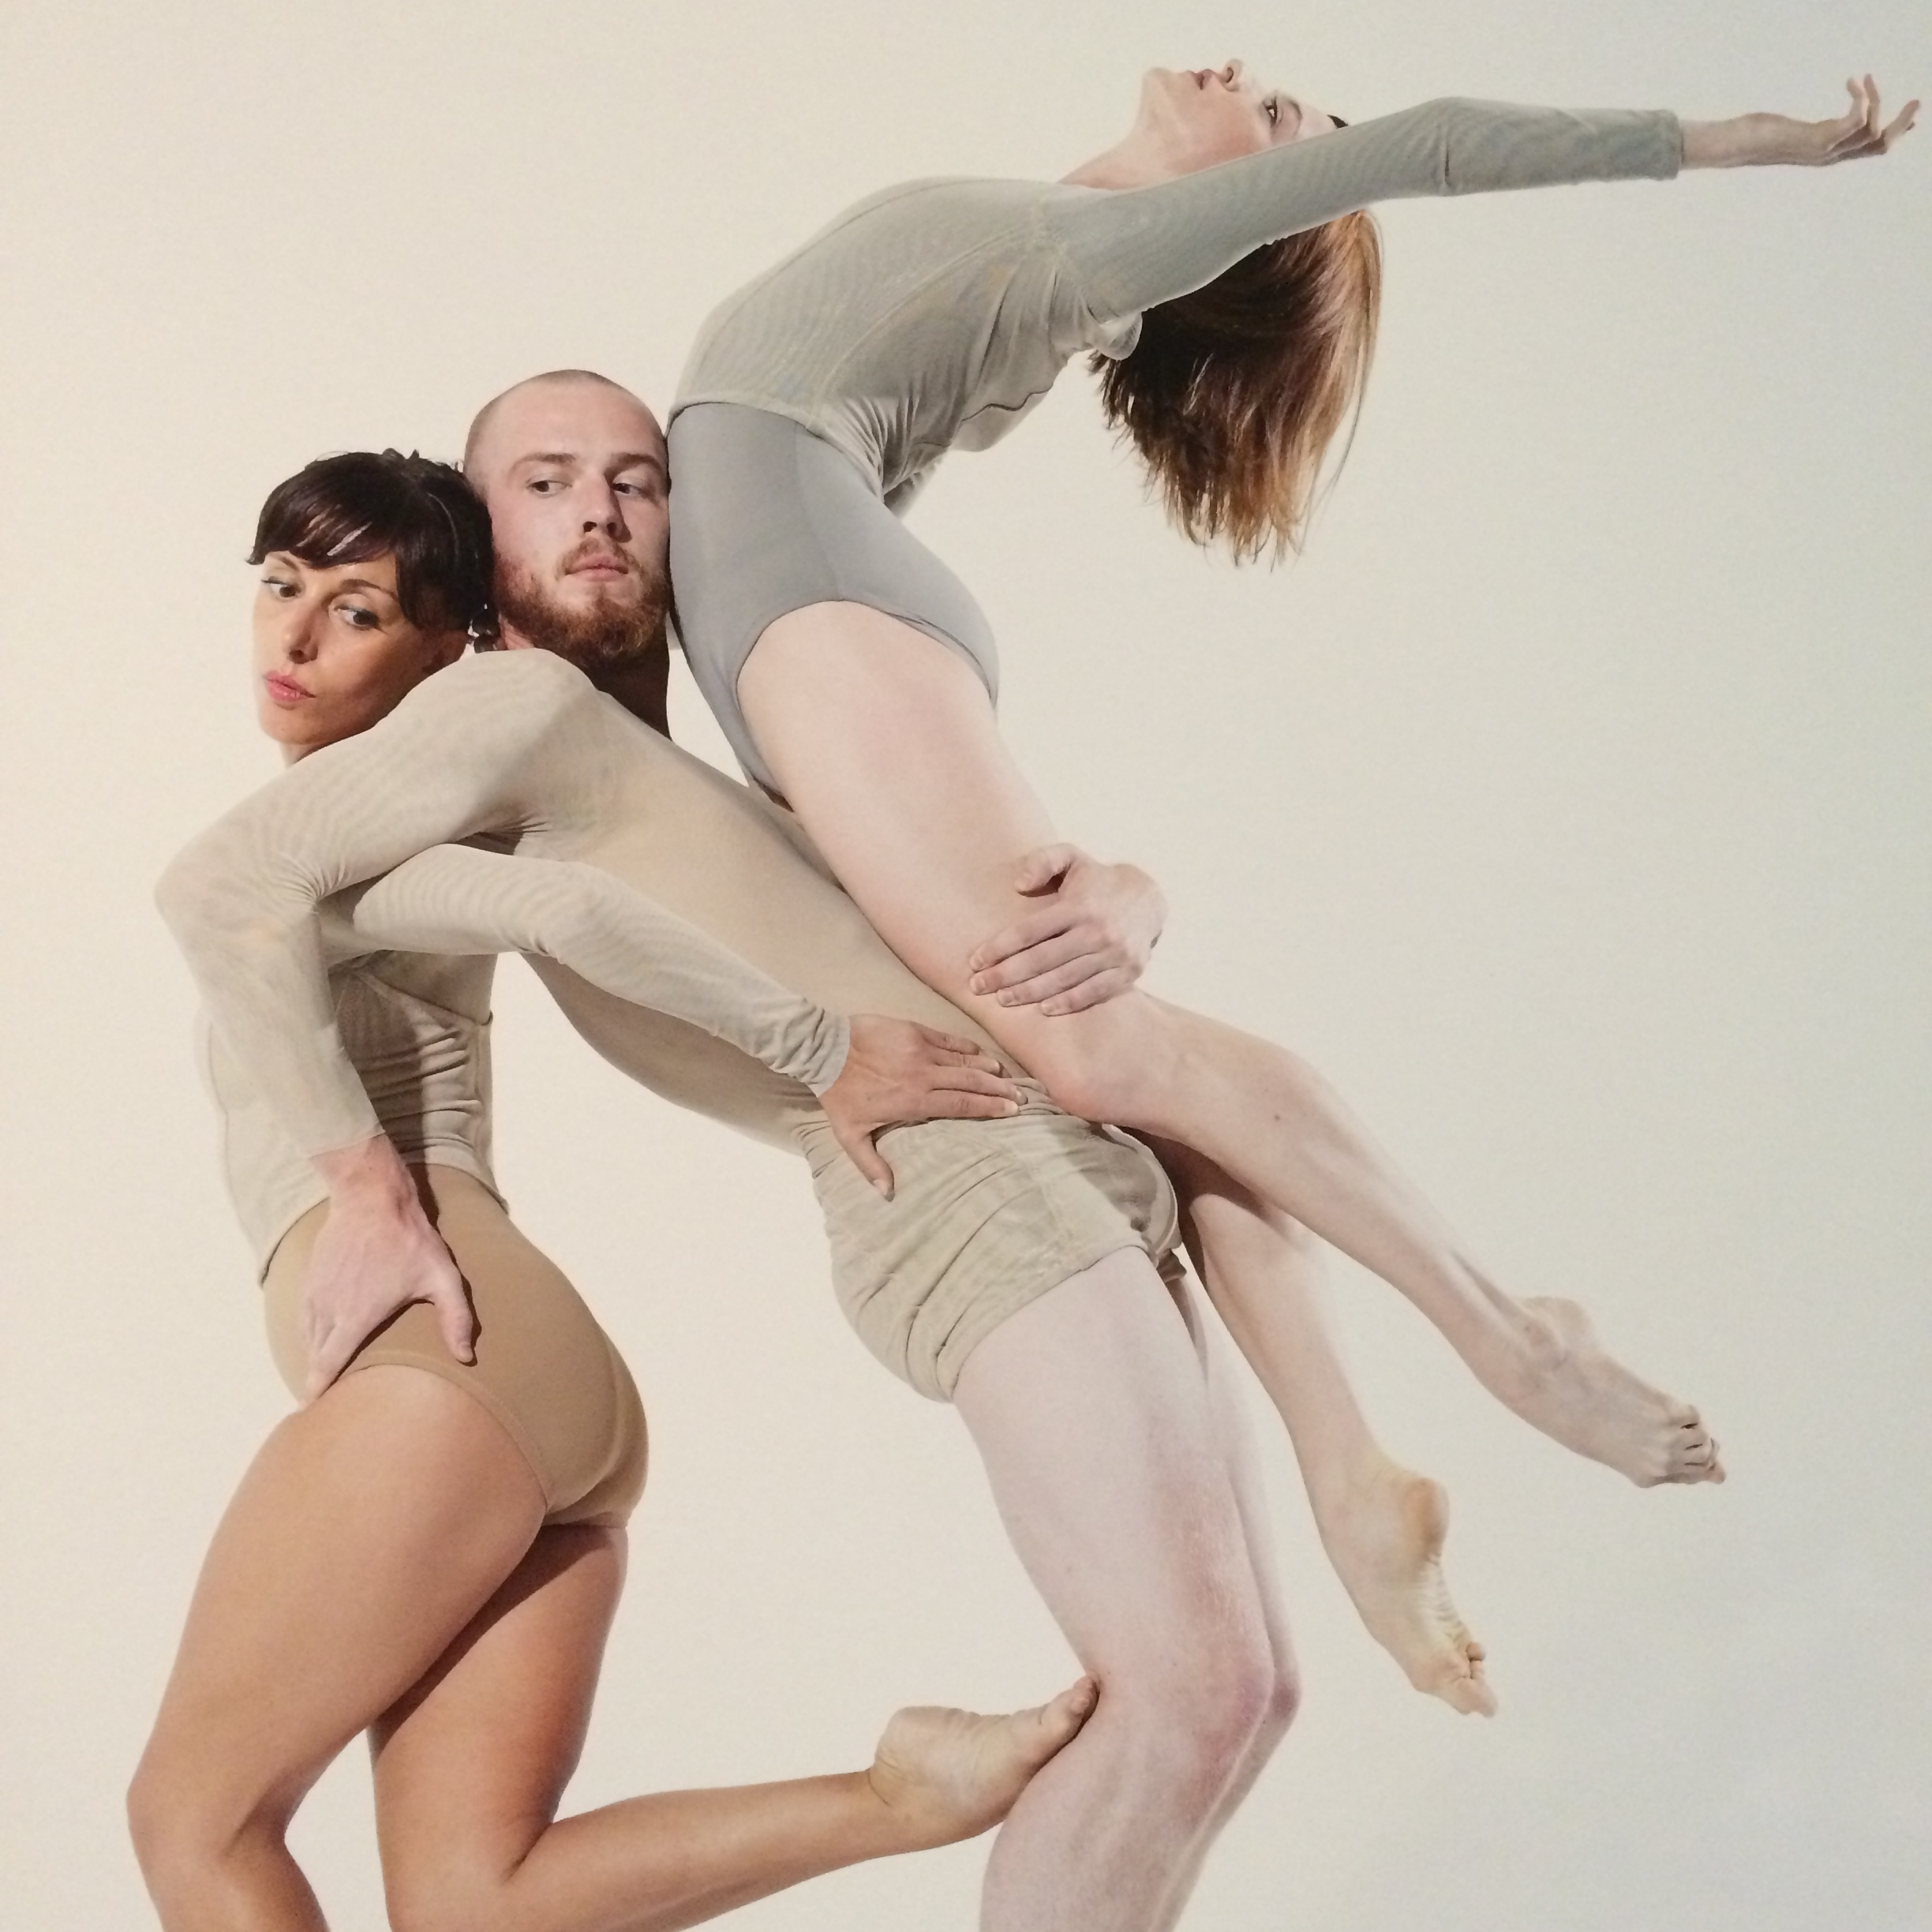 Post:Ballet, Robert Dekkers' 'ourevolution', August 7-9, 2014. Yerba Buena Center for the Arts, SF. David DeSilva Photography.